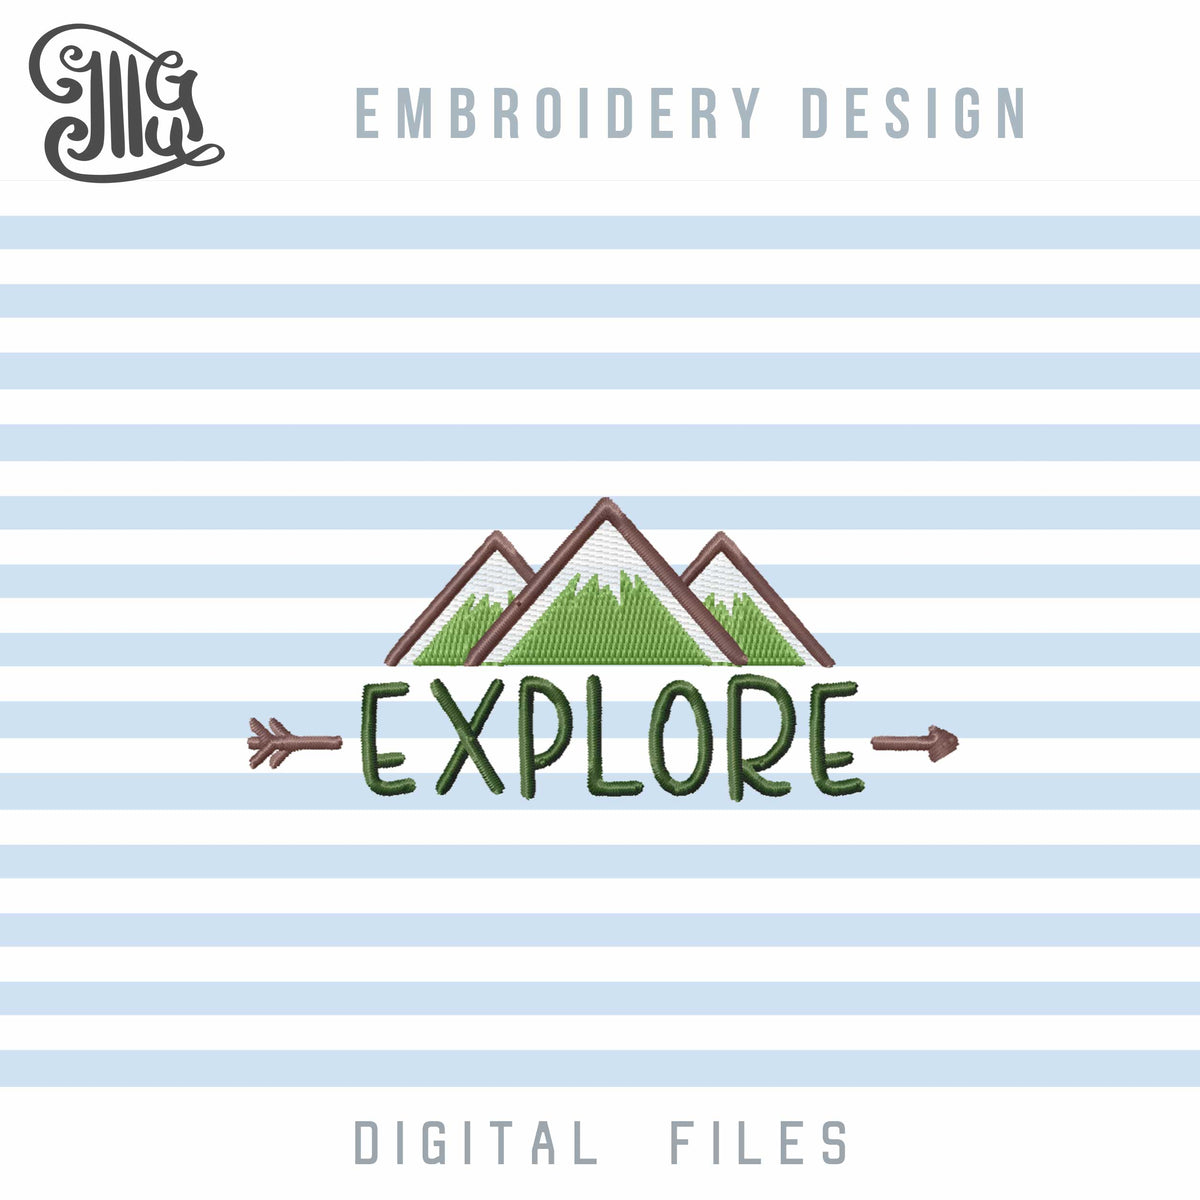 Camping Embroidery Designs, Travel Embroidery Pattern